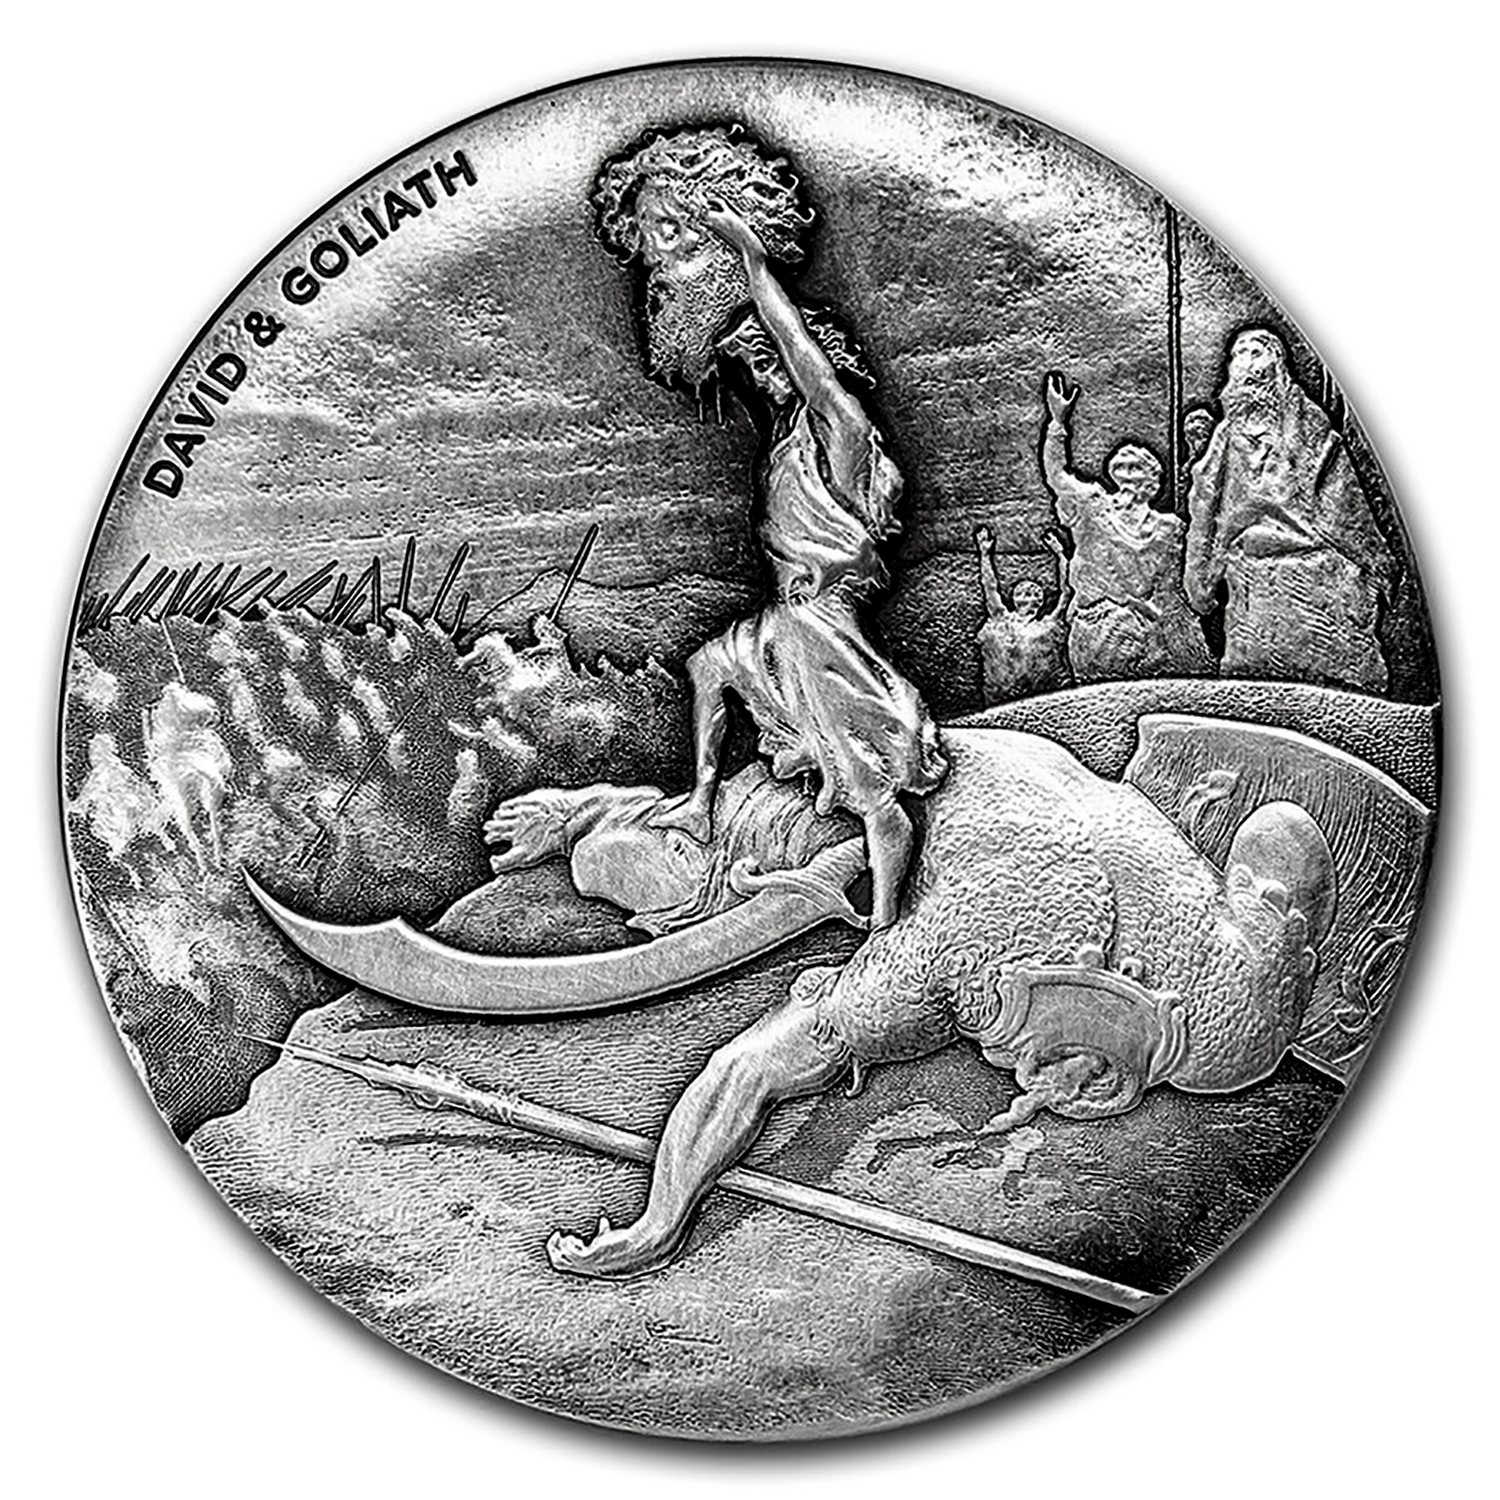 2015 2 oz Silver Coin - Biblical Series (David & Goliath)